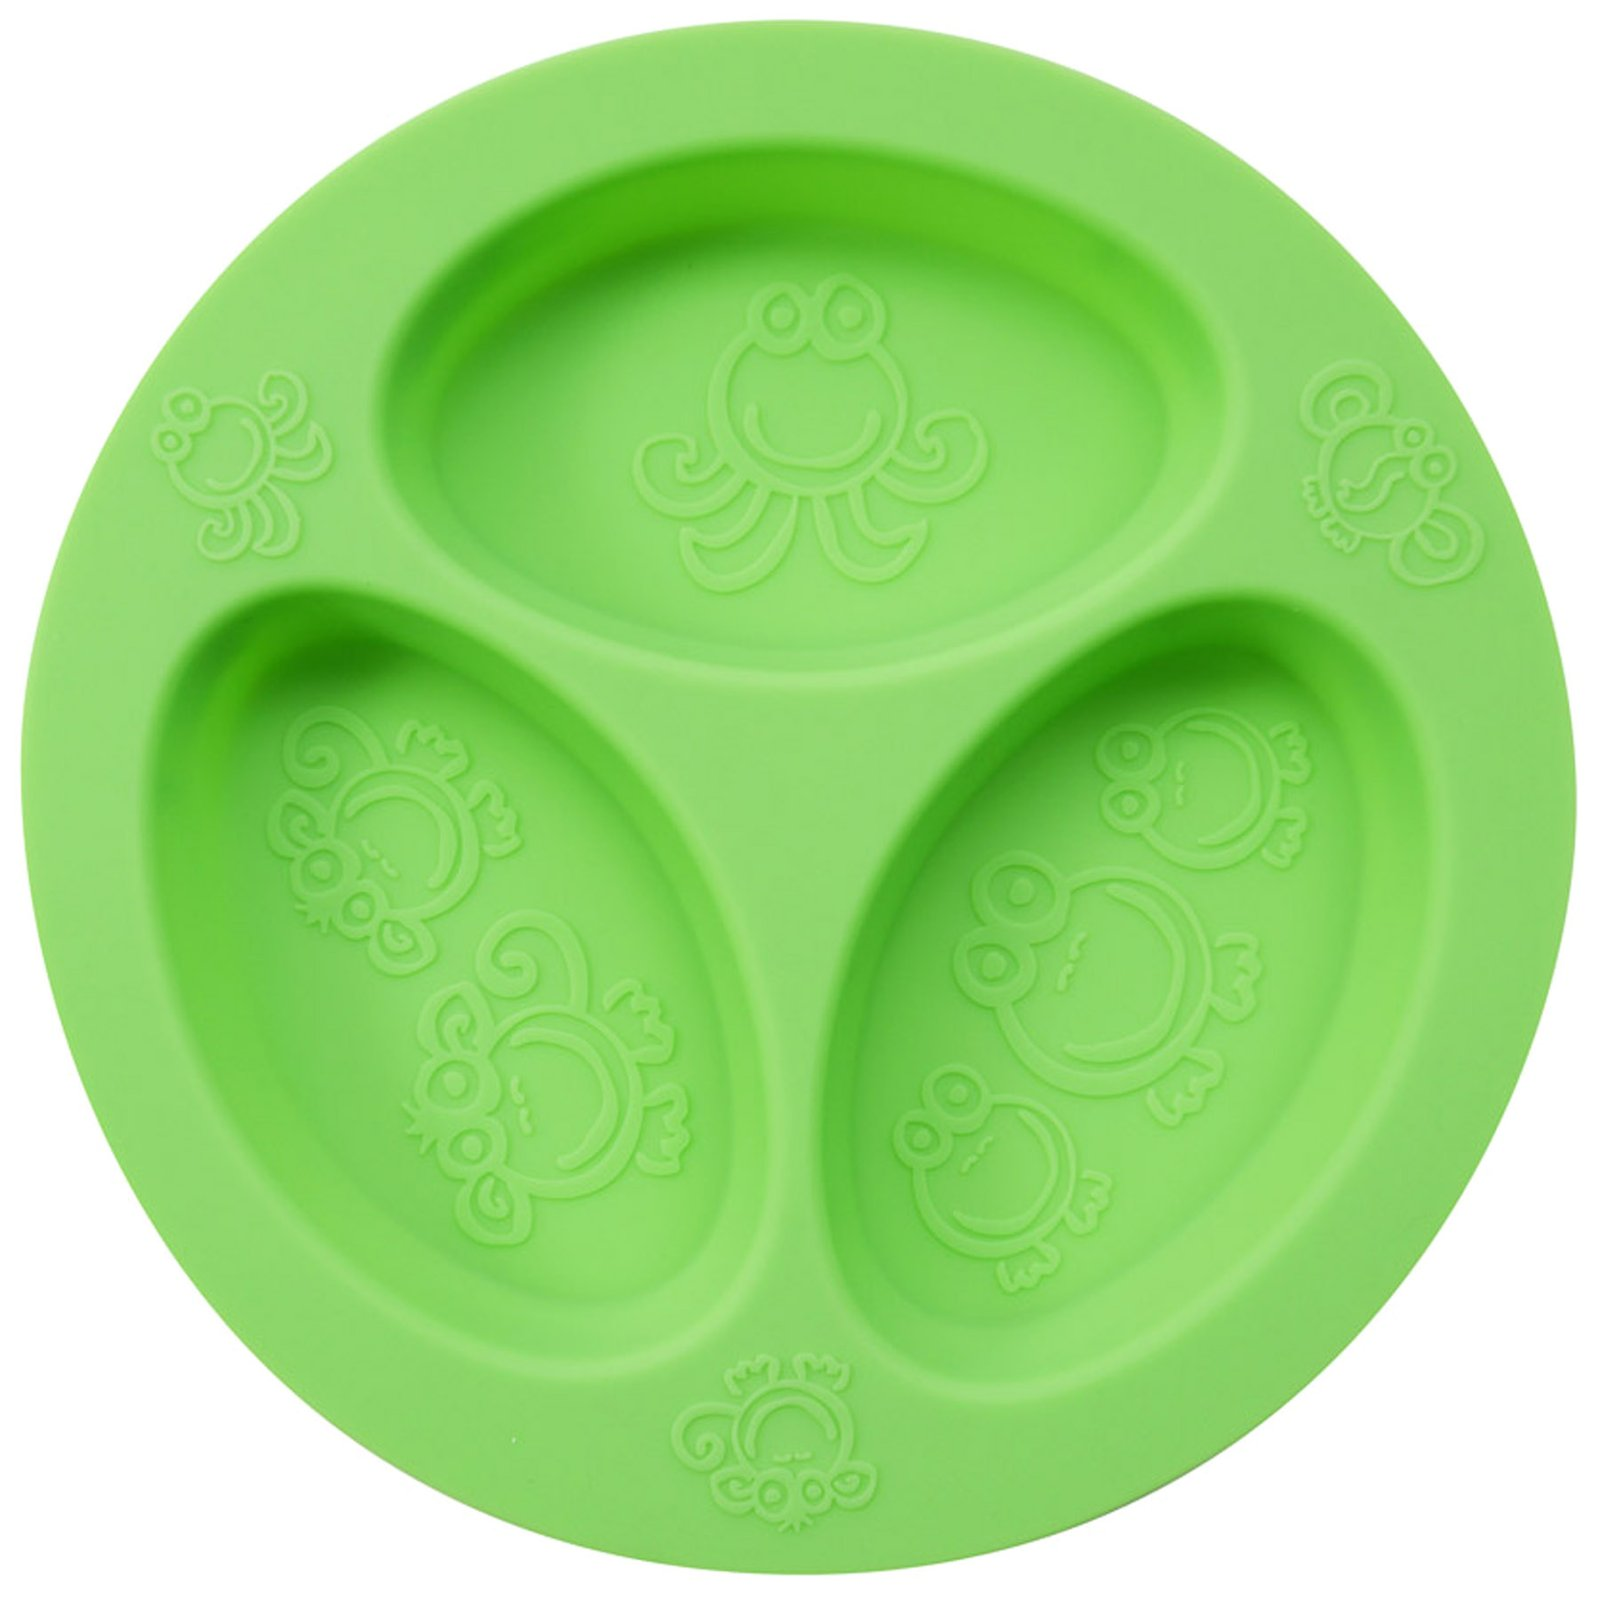 oogaa Baby and Toddler Divided Plate - Green - 1 ct.